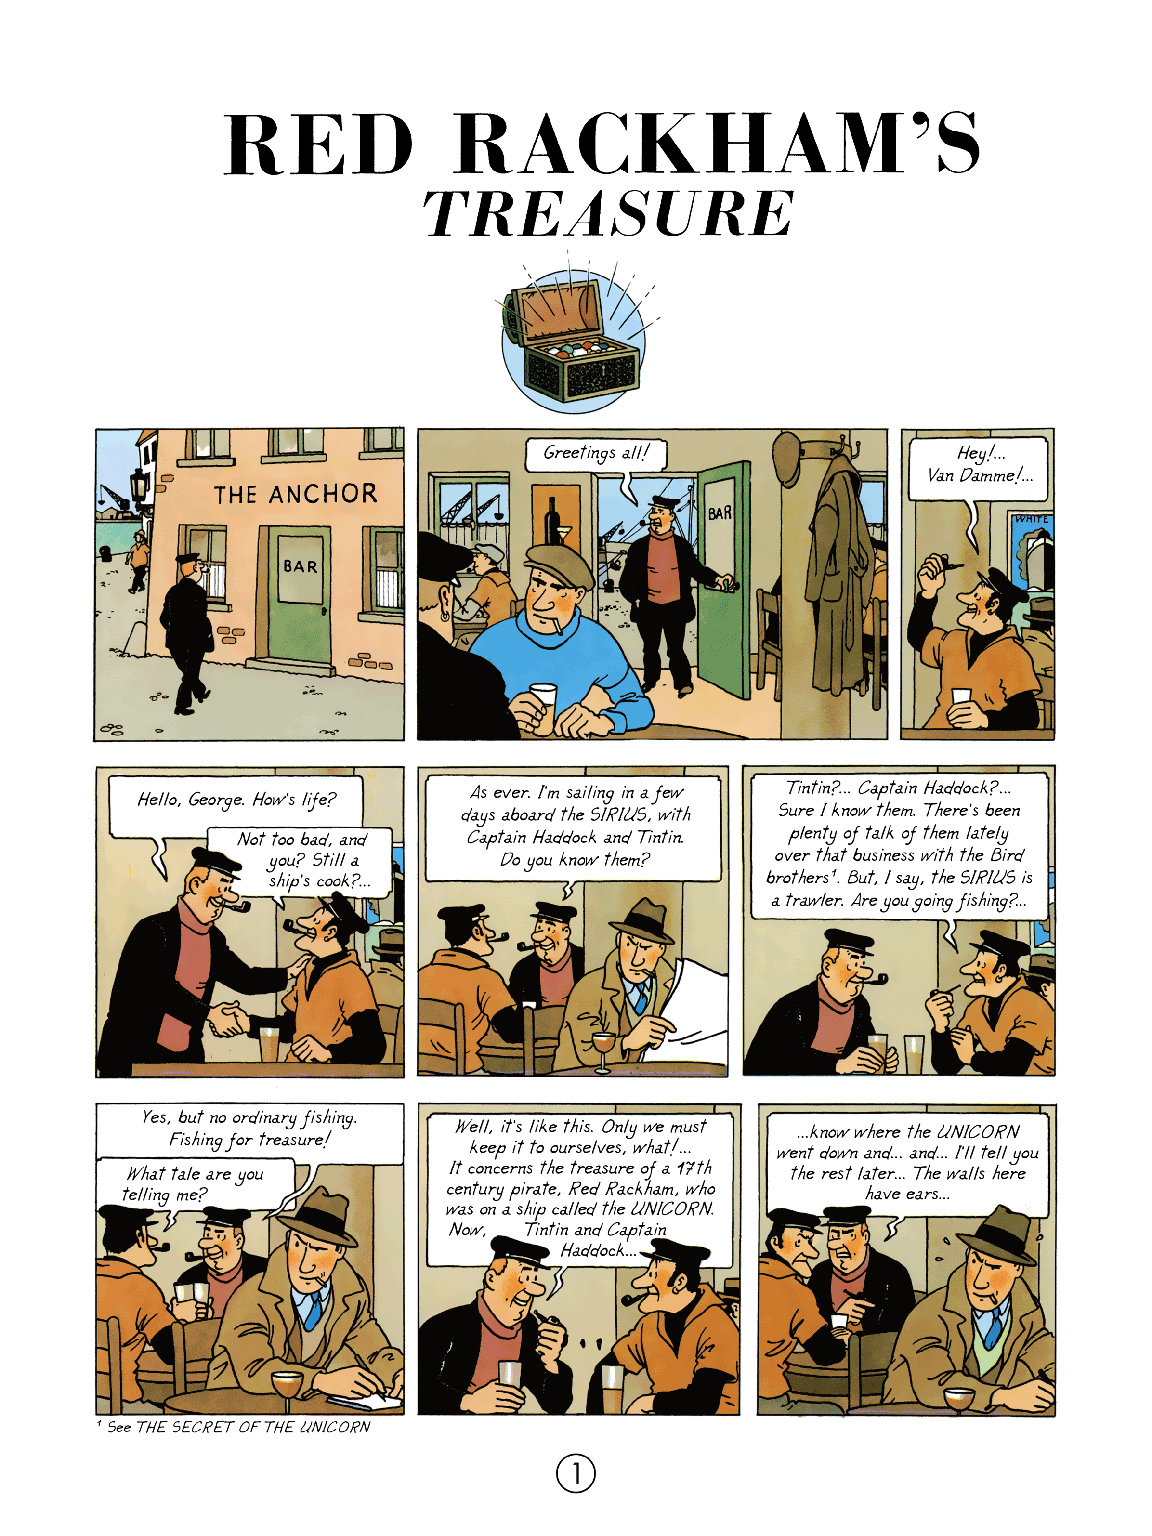 Red Rackham's Treasure - Page 1